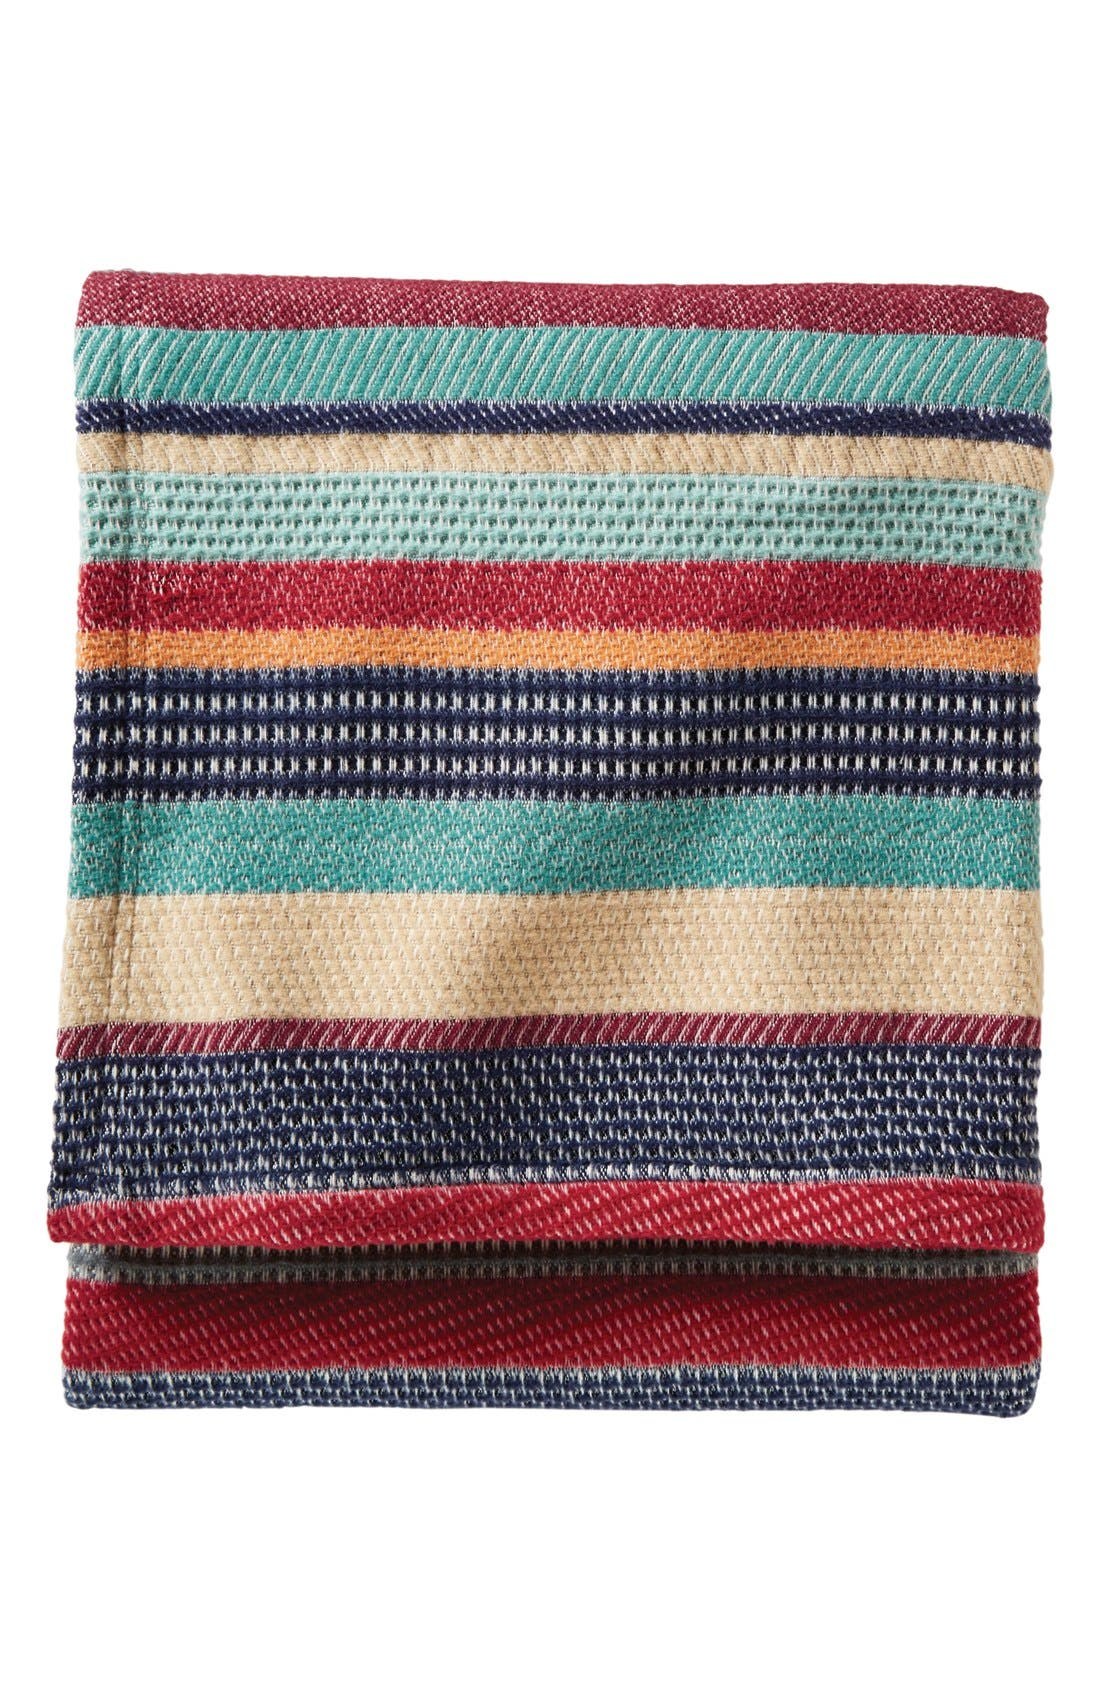 Pendleton 'Chimayo' Throw Blanket